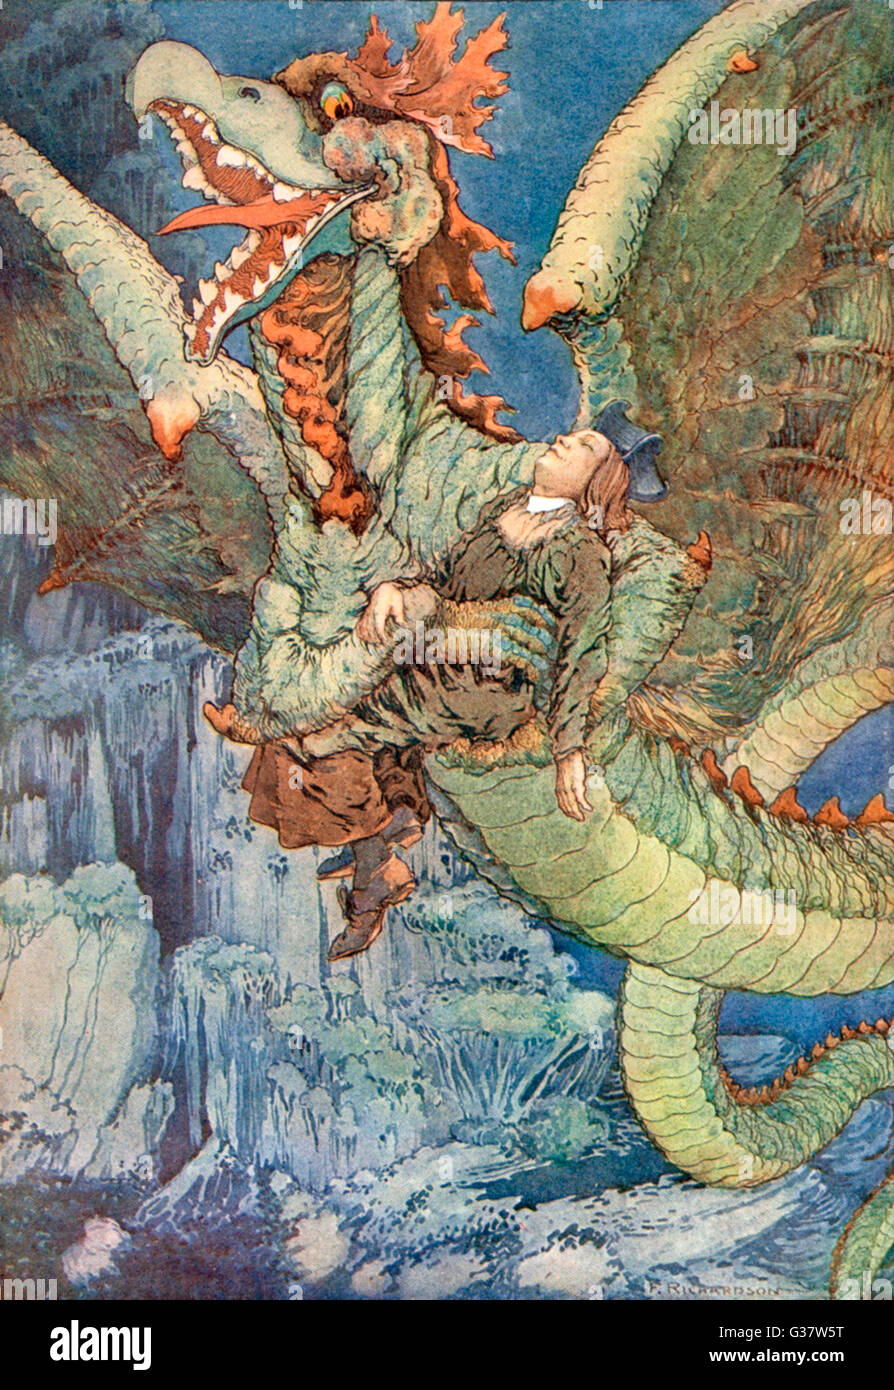 A dragon-like Gryphon takes to  the air with a sleeping victim         Date: 1887 - Stock Image